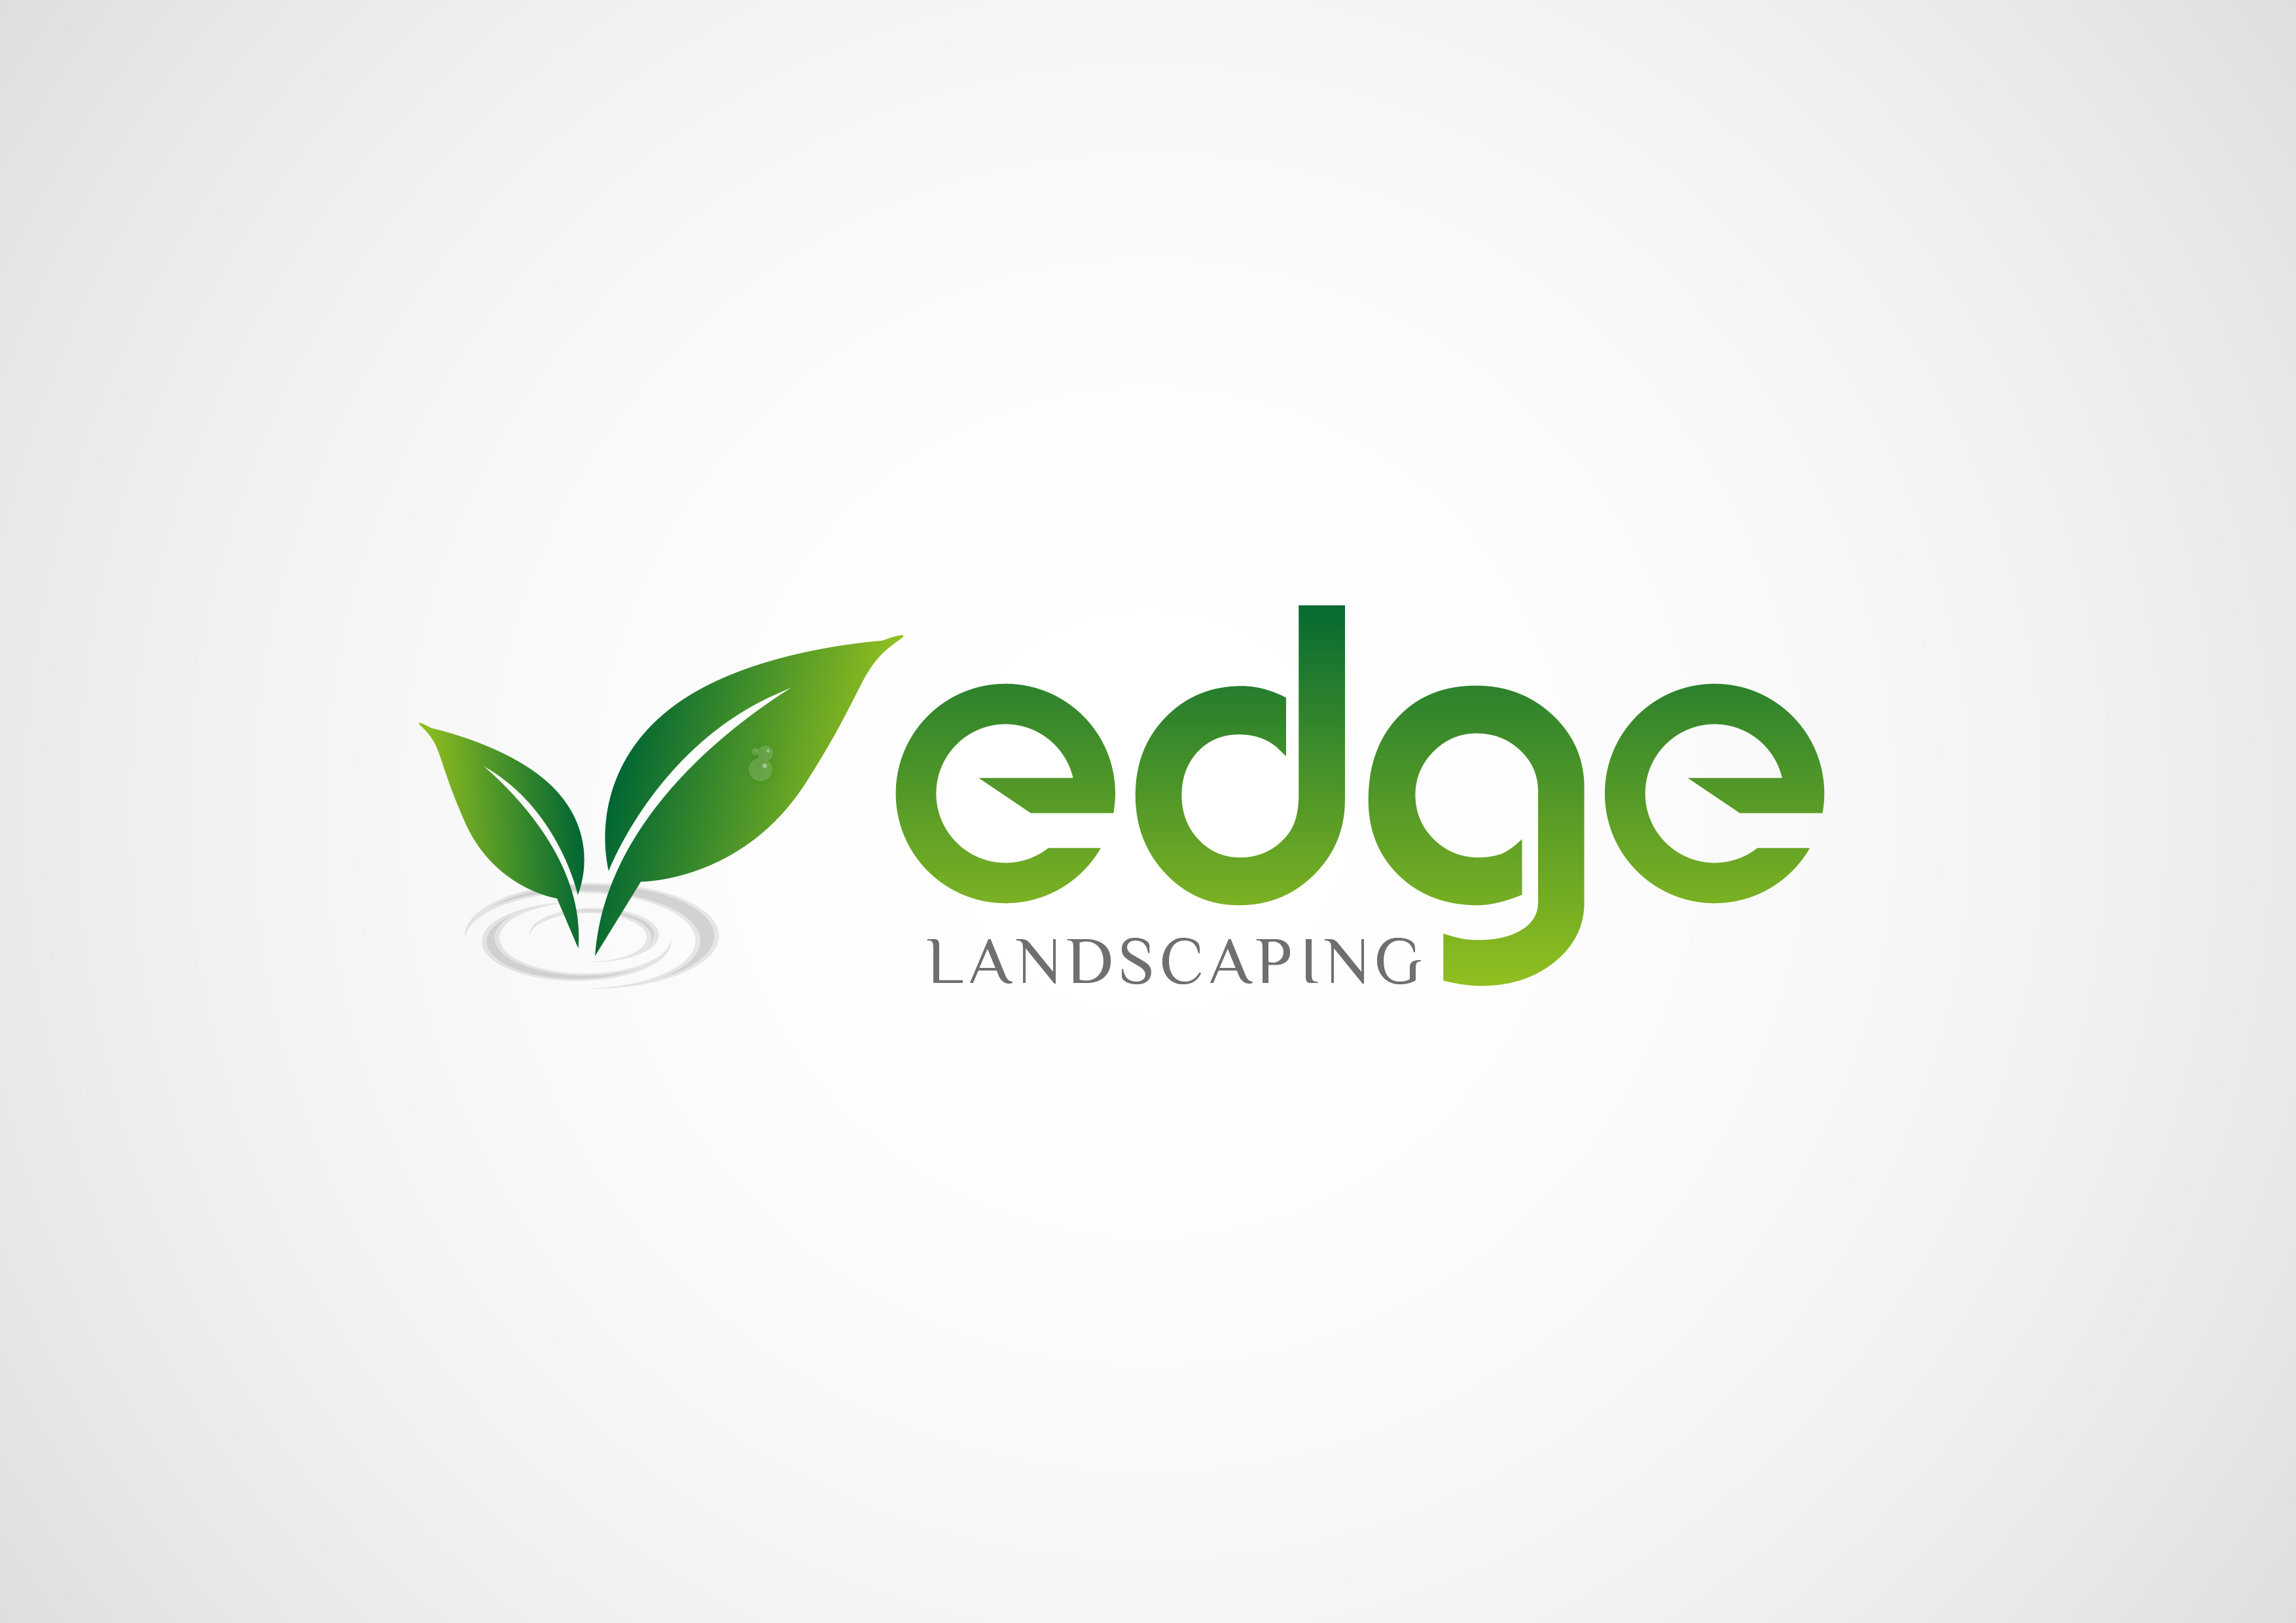 Logo Design by 3draw - Entry No. 164 in the Logo Design Contest Inspiring Logo Design for Edge Landscaping.